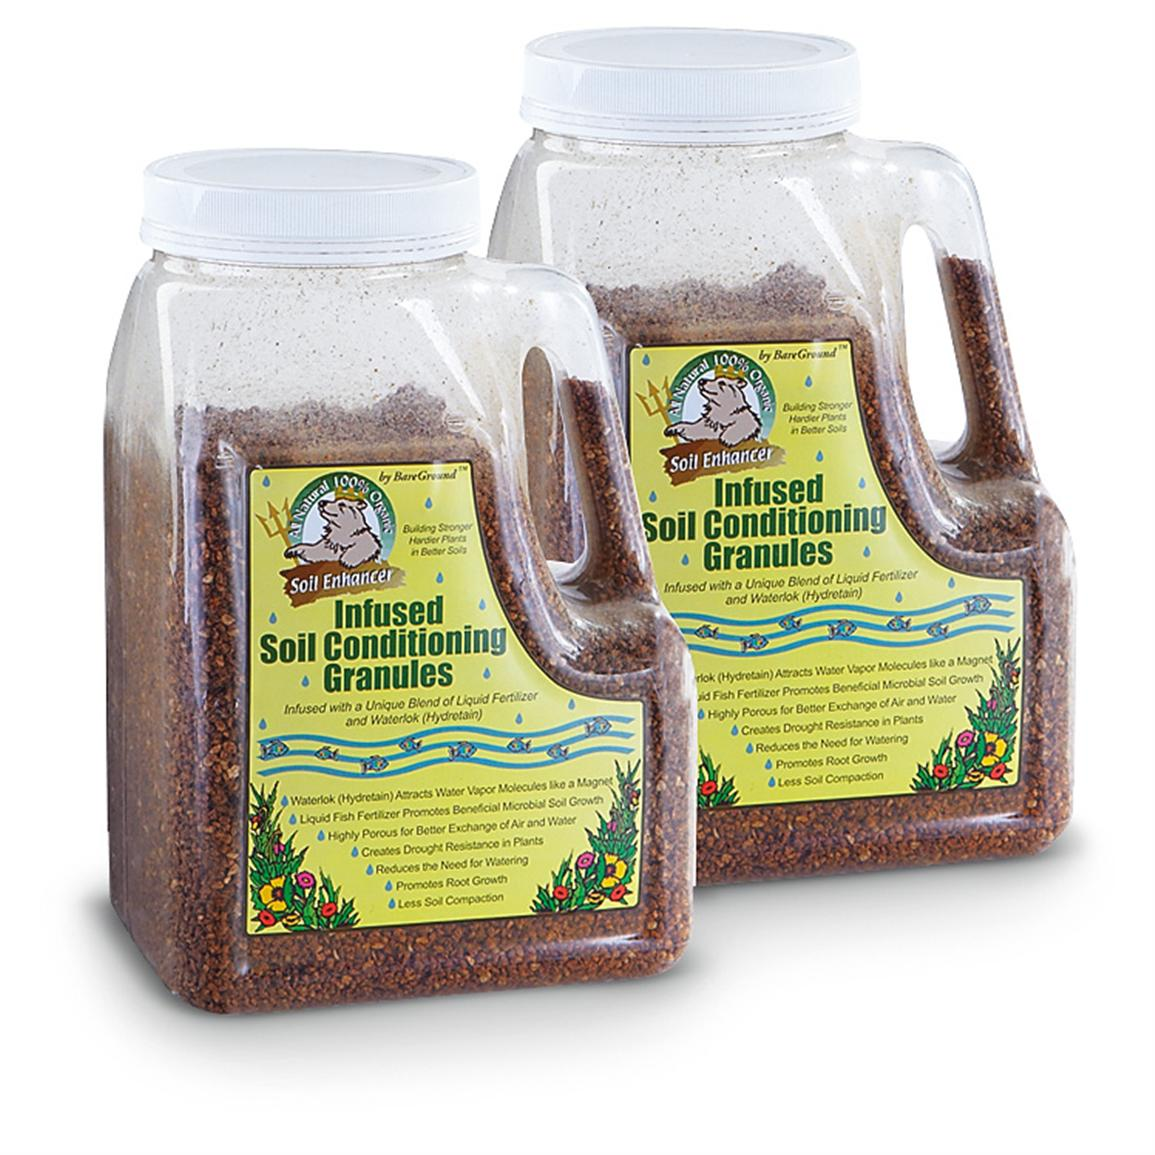 2-Pk. of 5-lb. Bottles of Infused Soil Conditioning Granules